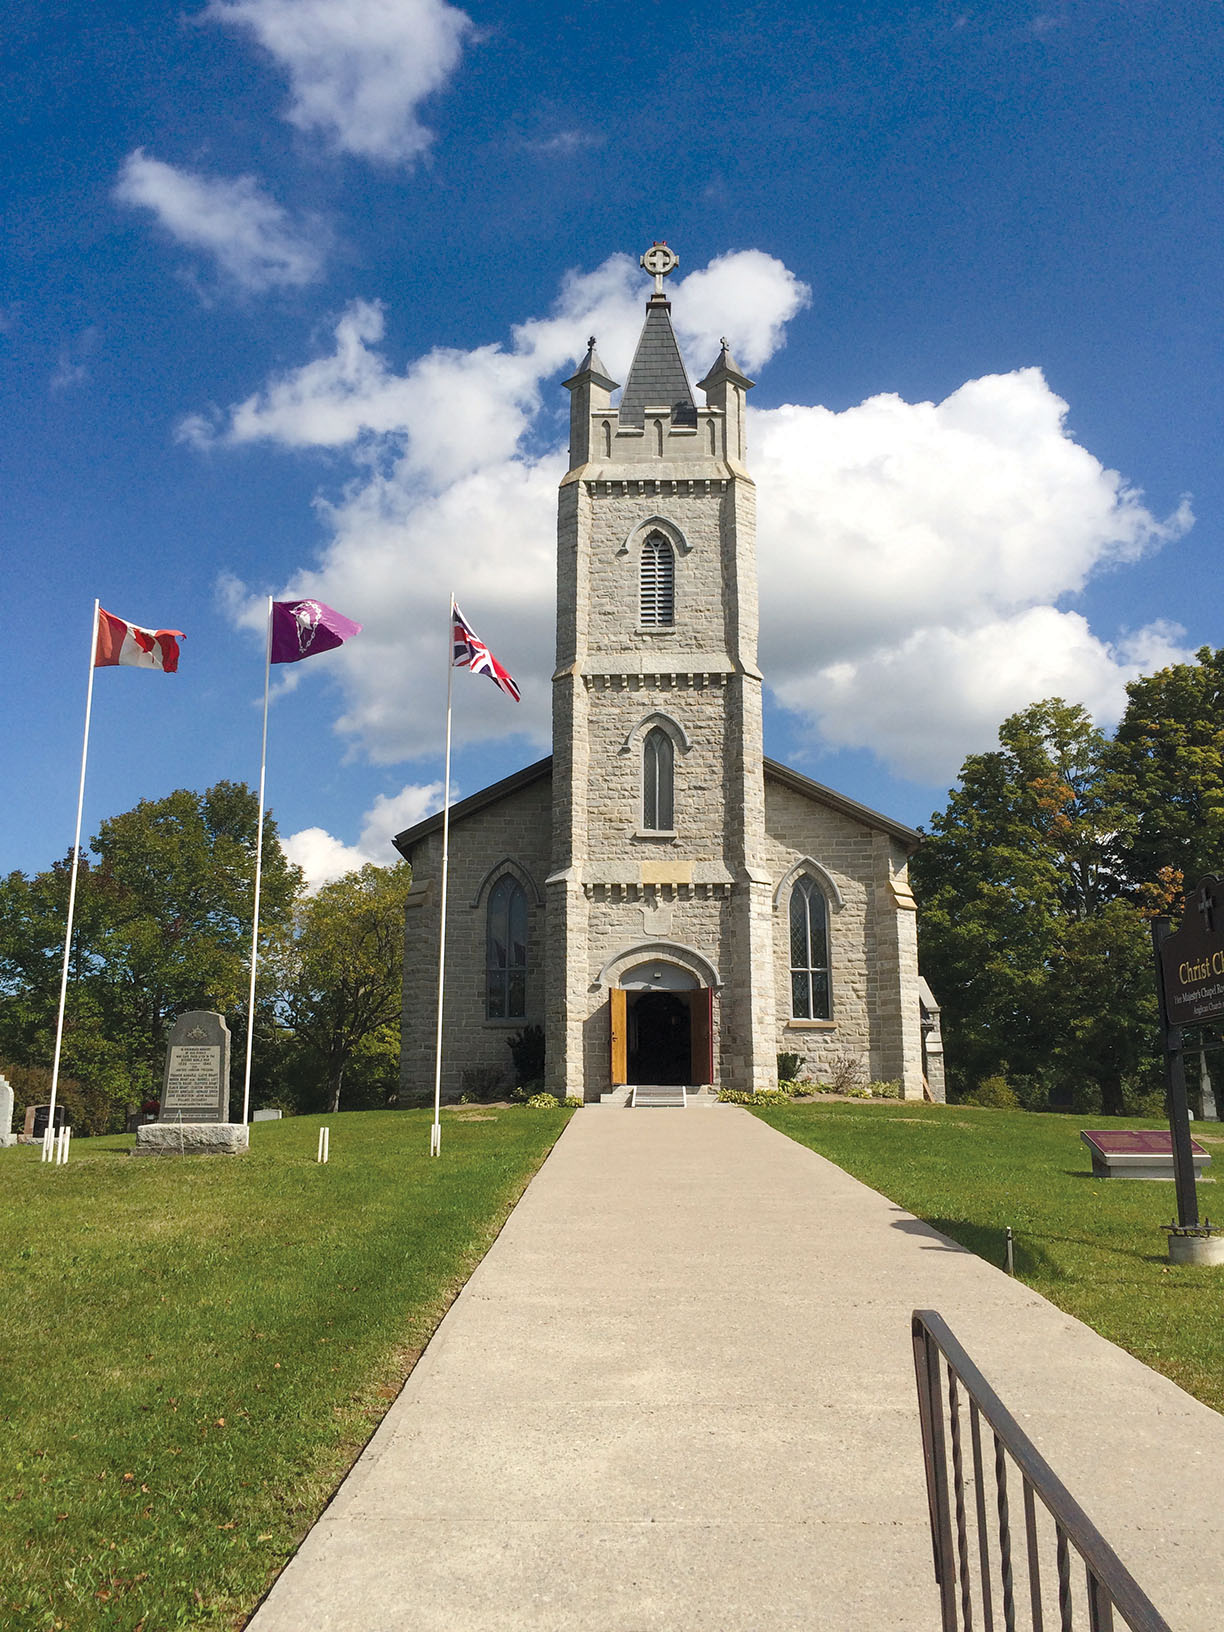 The cemetery attached to the Christ Church Royal Chapel located in nearby Tyendinaga Mohawk Territory is the final resting place of legendary Dr. Oronhyatekha, the first known Aboriginal Oxford scholar and one of Canada's first Indigenous M.D.s. Photo courtesy Bev Hill LaRue, MBQ Communications, Tyendinaga Mohawk Territory.